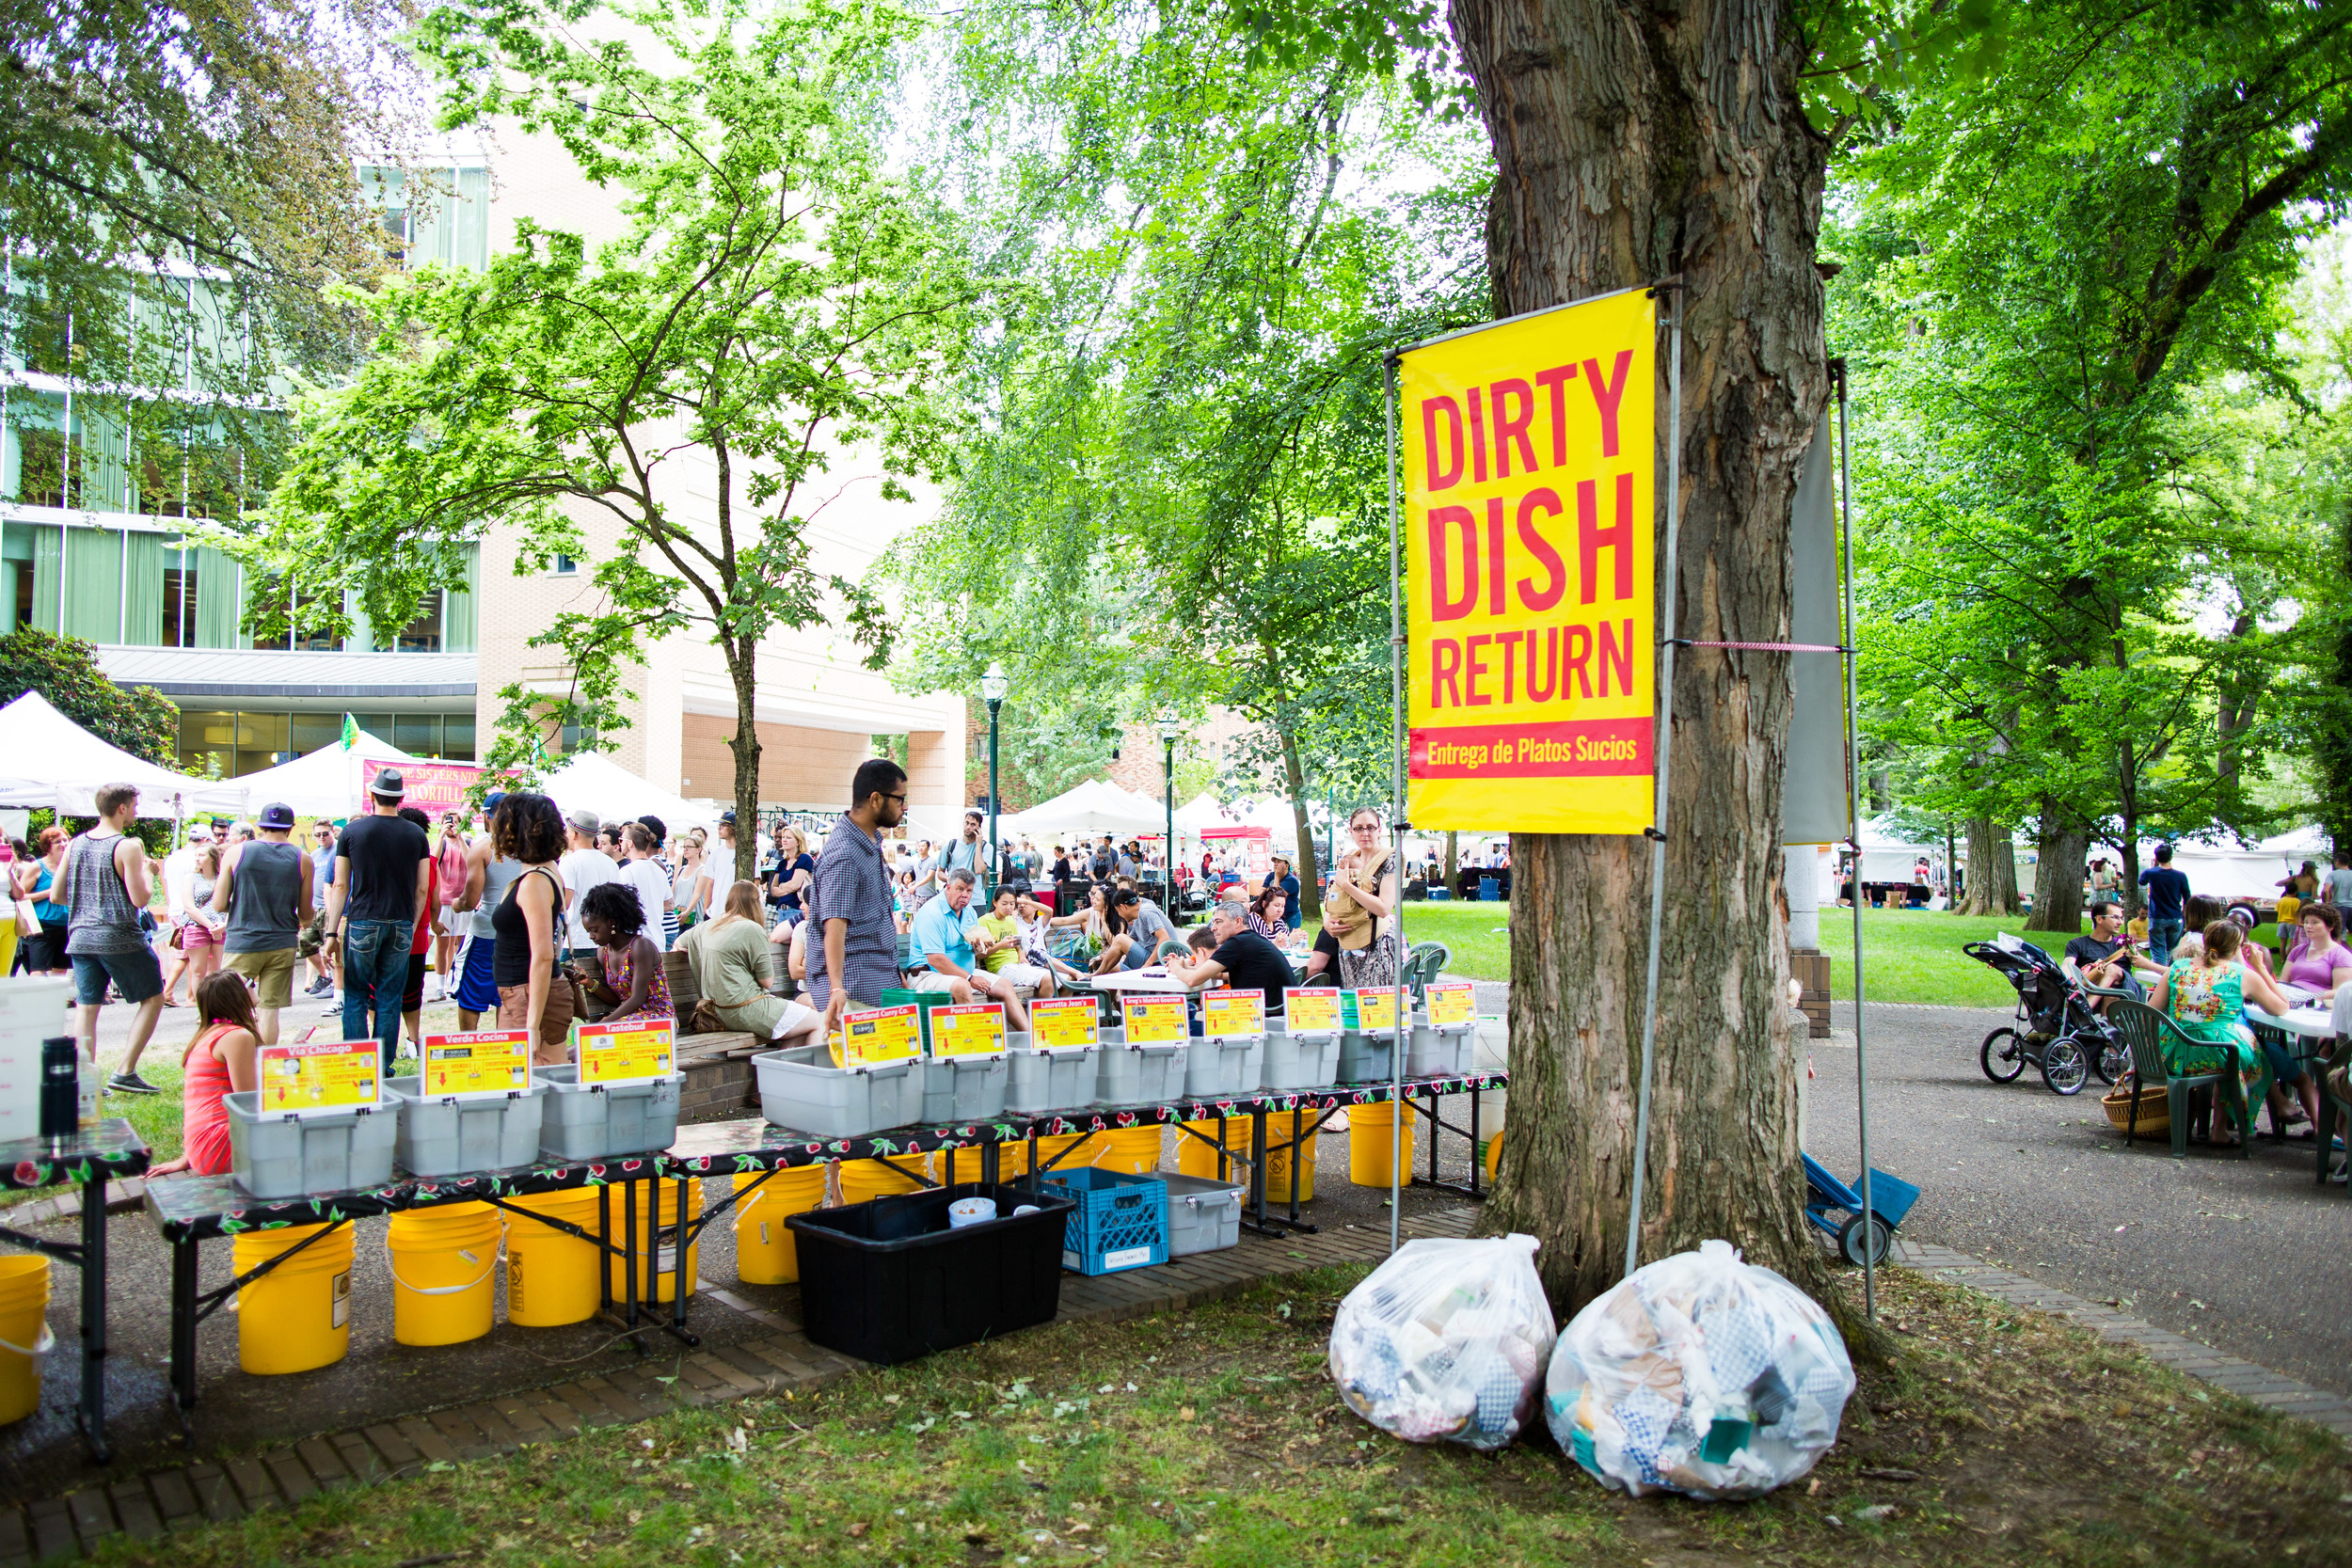 All food vendors serve their food on real dishes and with real silverware. When finished, diners return the dishes to their designated bin of soapy water. A terrific way to reduce waste. As you can see only two bags collected at this spot and the market is in its 3rd hour.